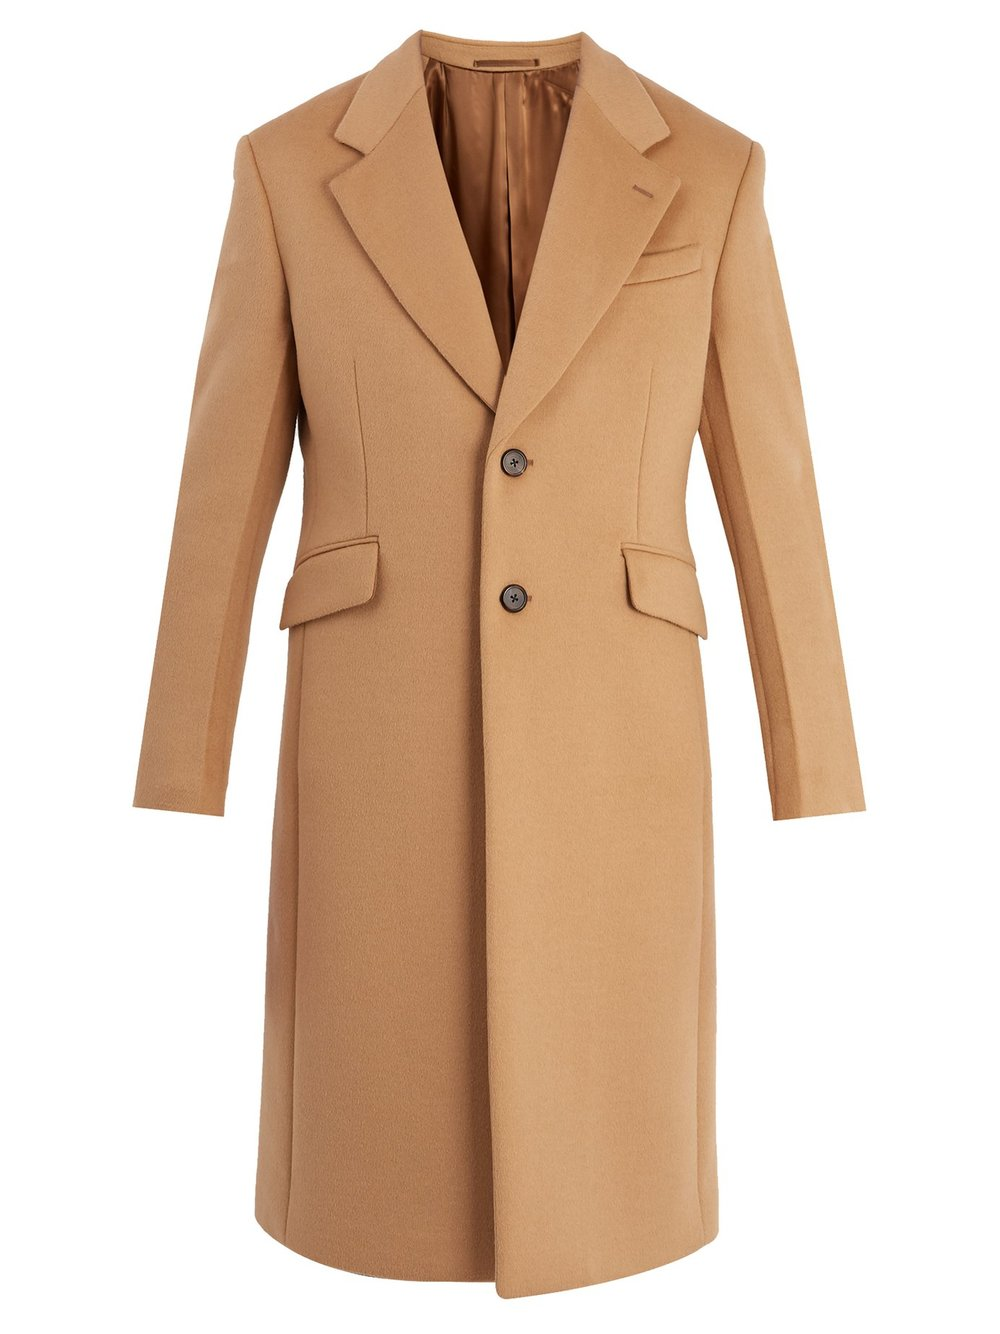 Prada overcoat at Matches Fashion - £3,060